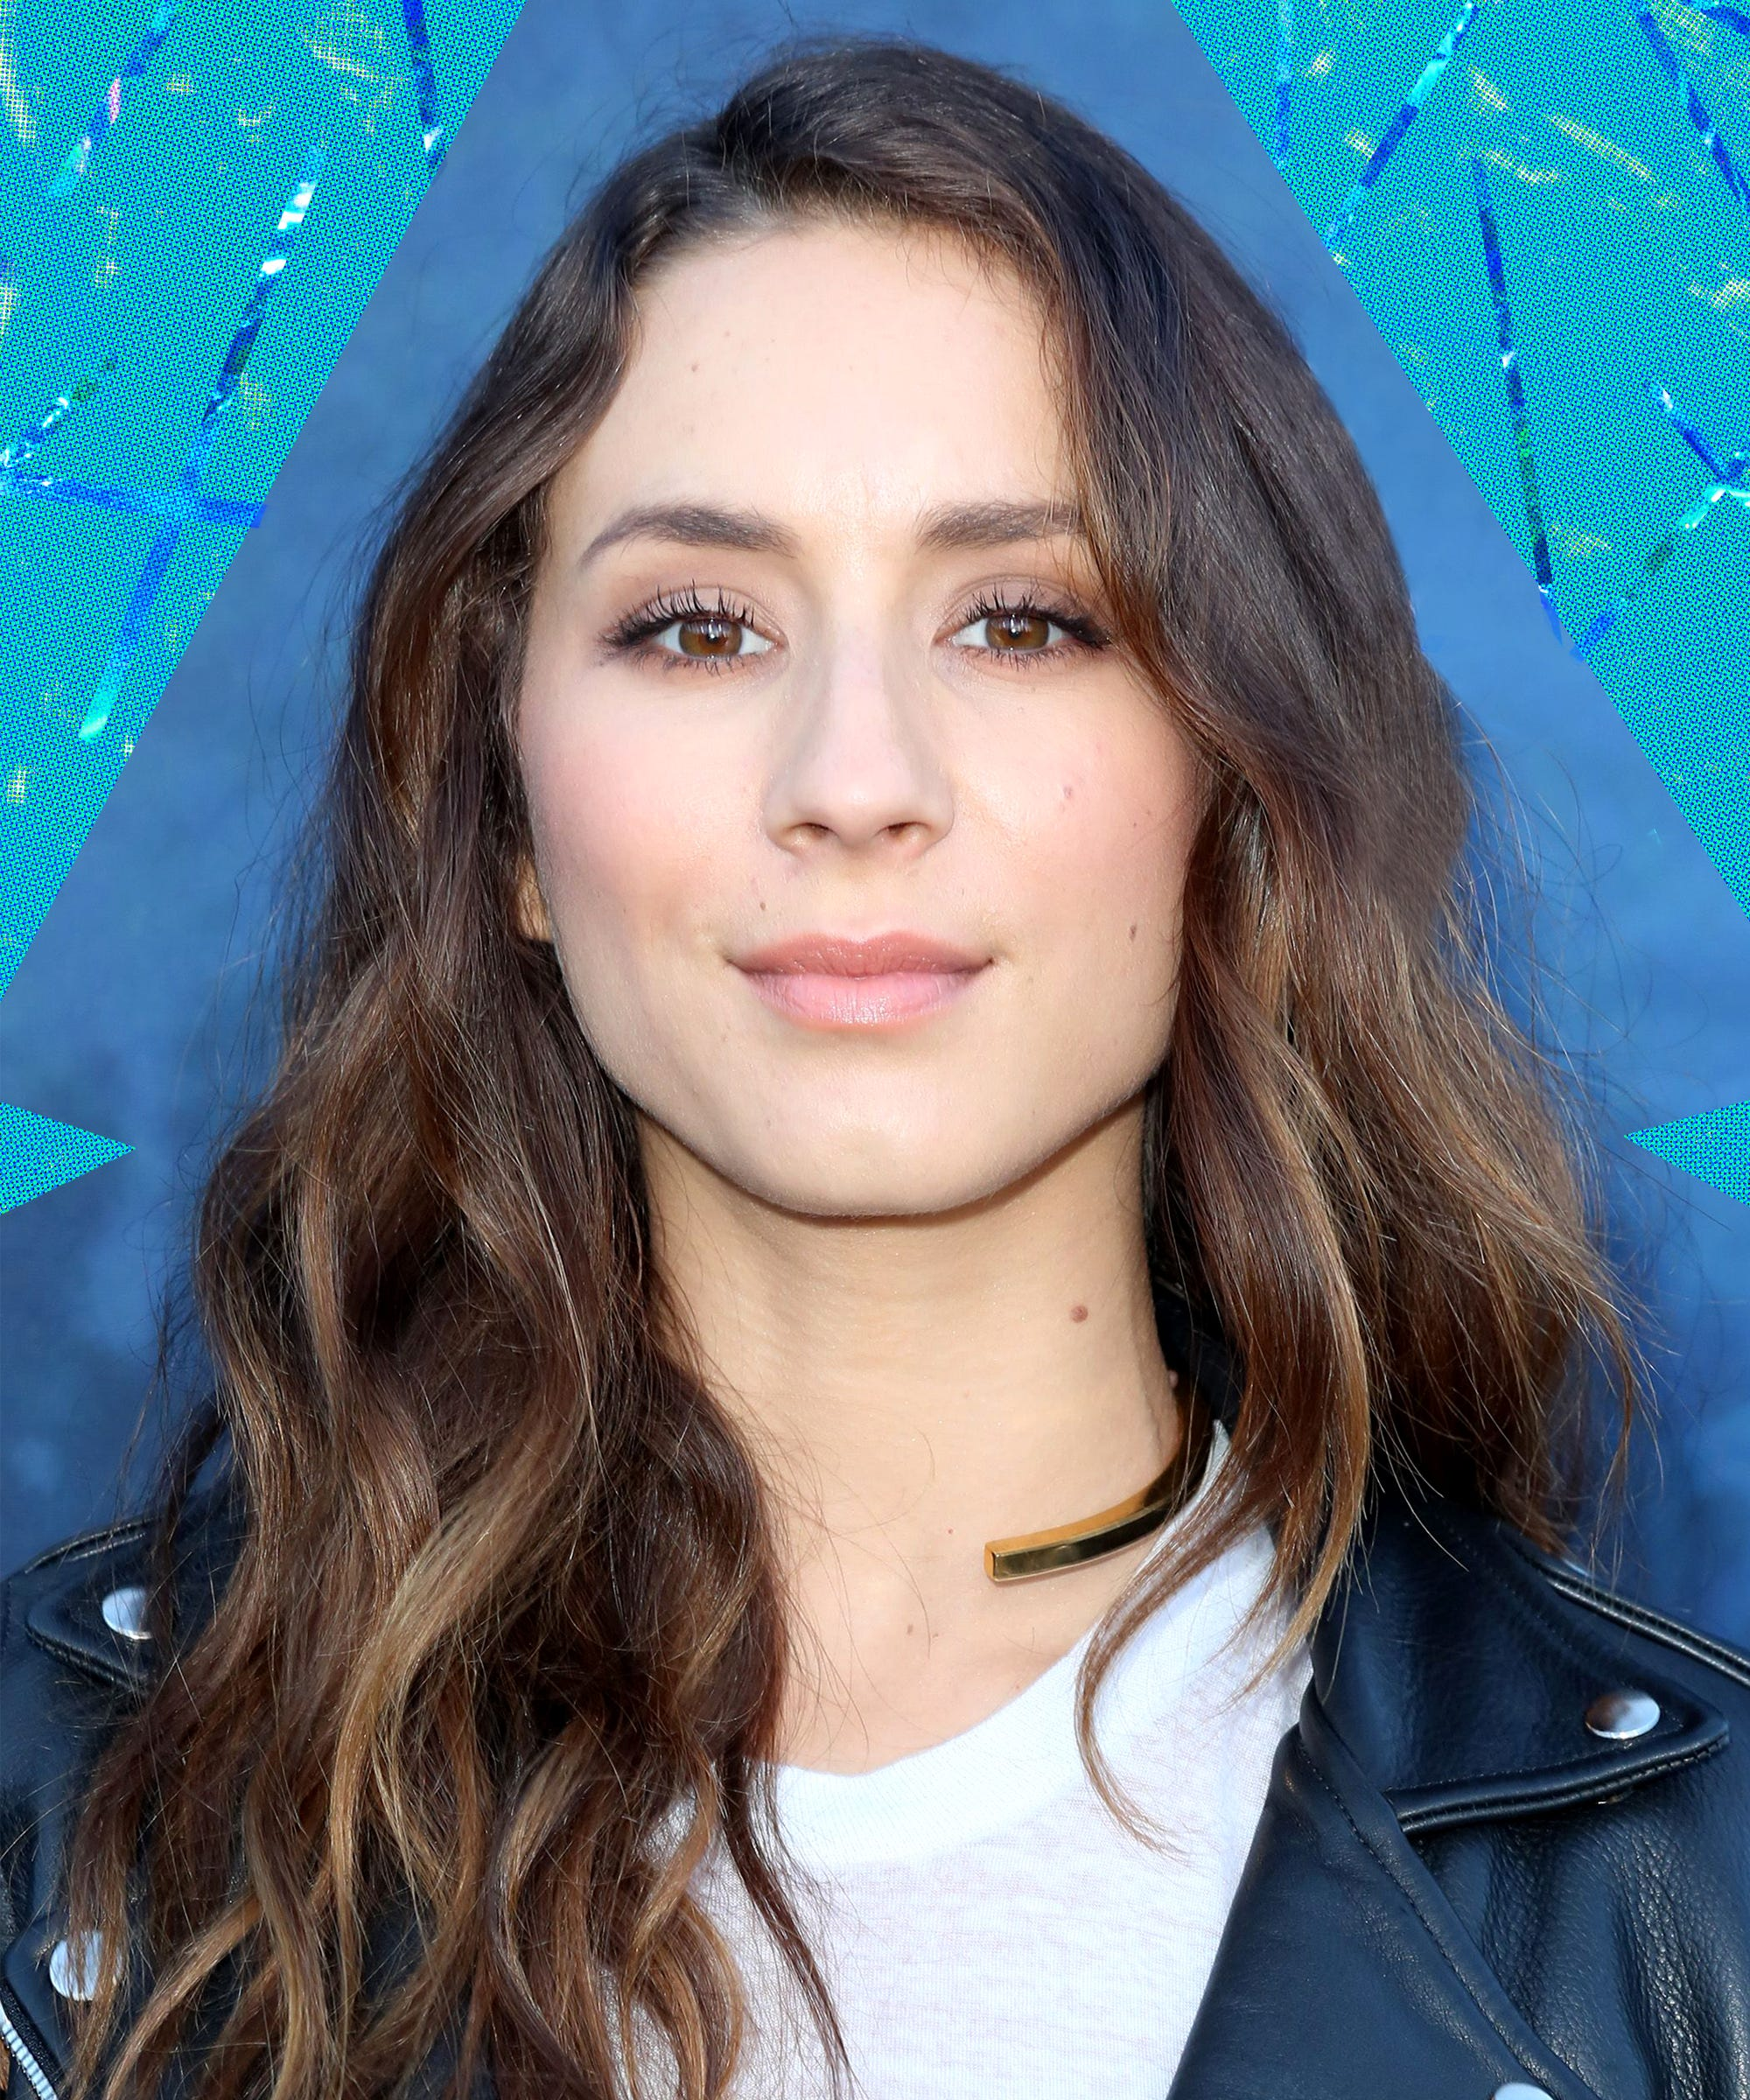 Photos Troian Bellisario nude photos 2019